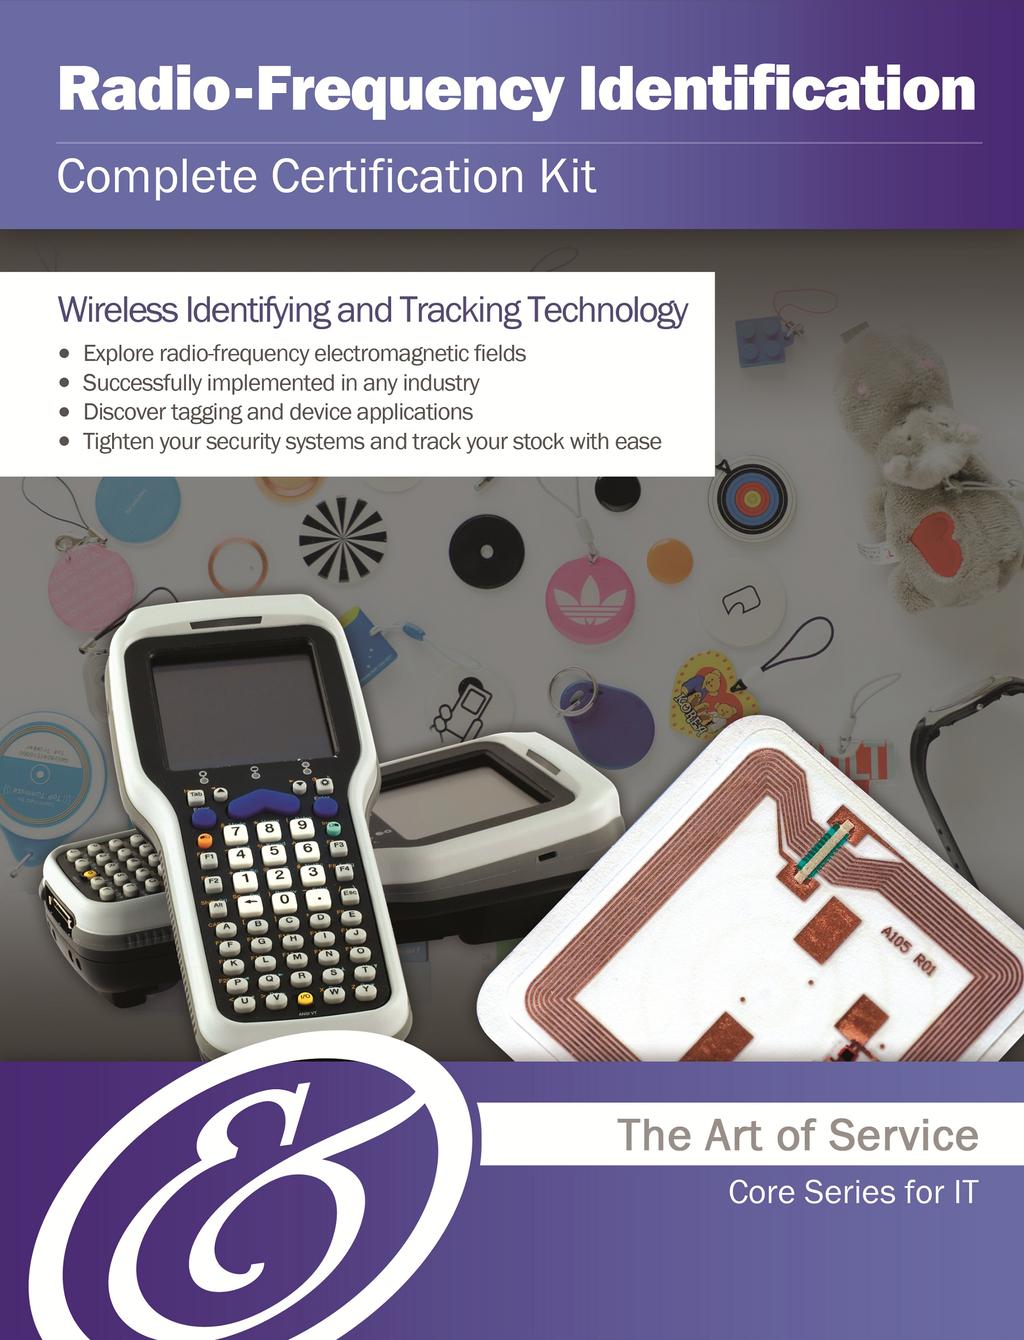 Radio-Frequency Identification Complete Certification Kit - Core Series for IT